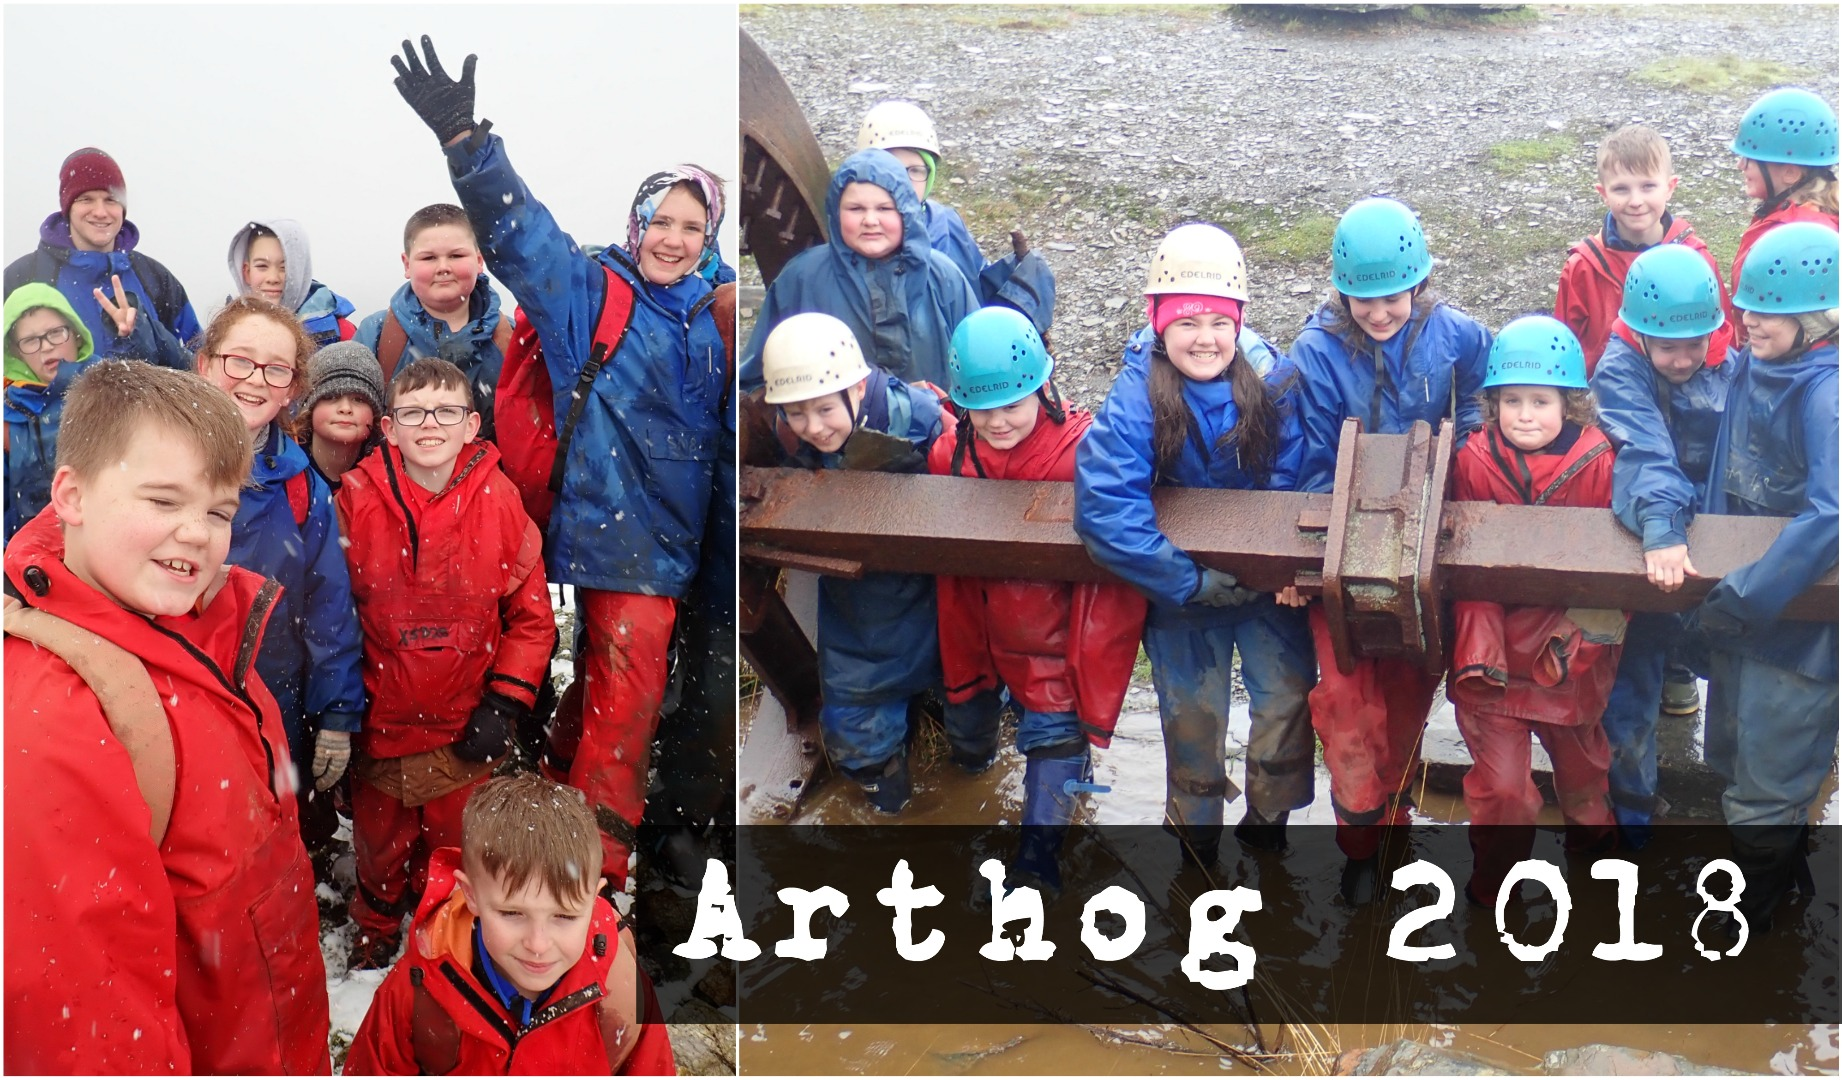 ARTHOG2018COLLAGE.jpg